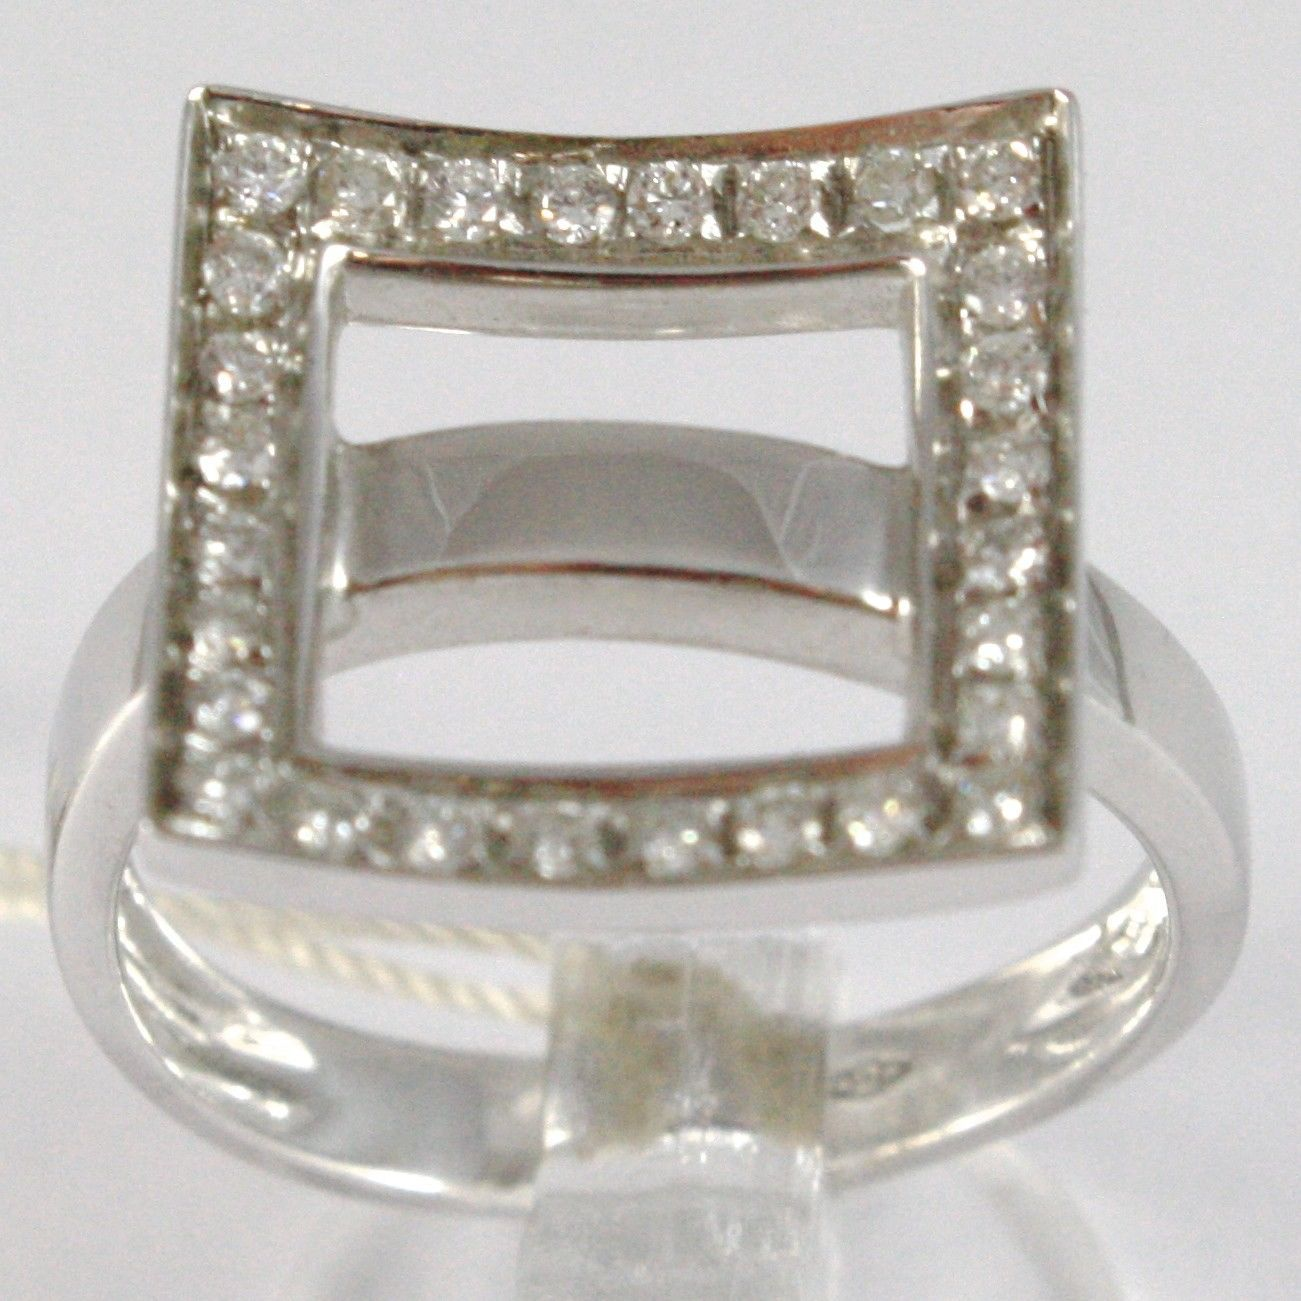 WHITE GOLD RING 750 18K, VERETTA UNDULATED, SQUARE OF DIAMONDS, CARAT 0.44